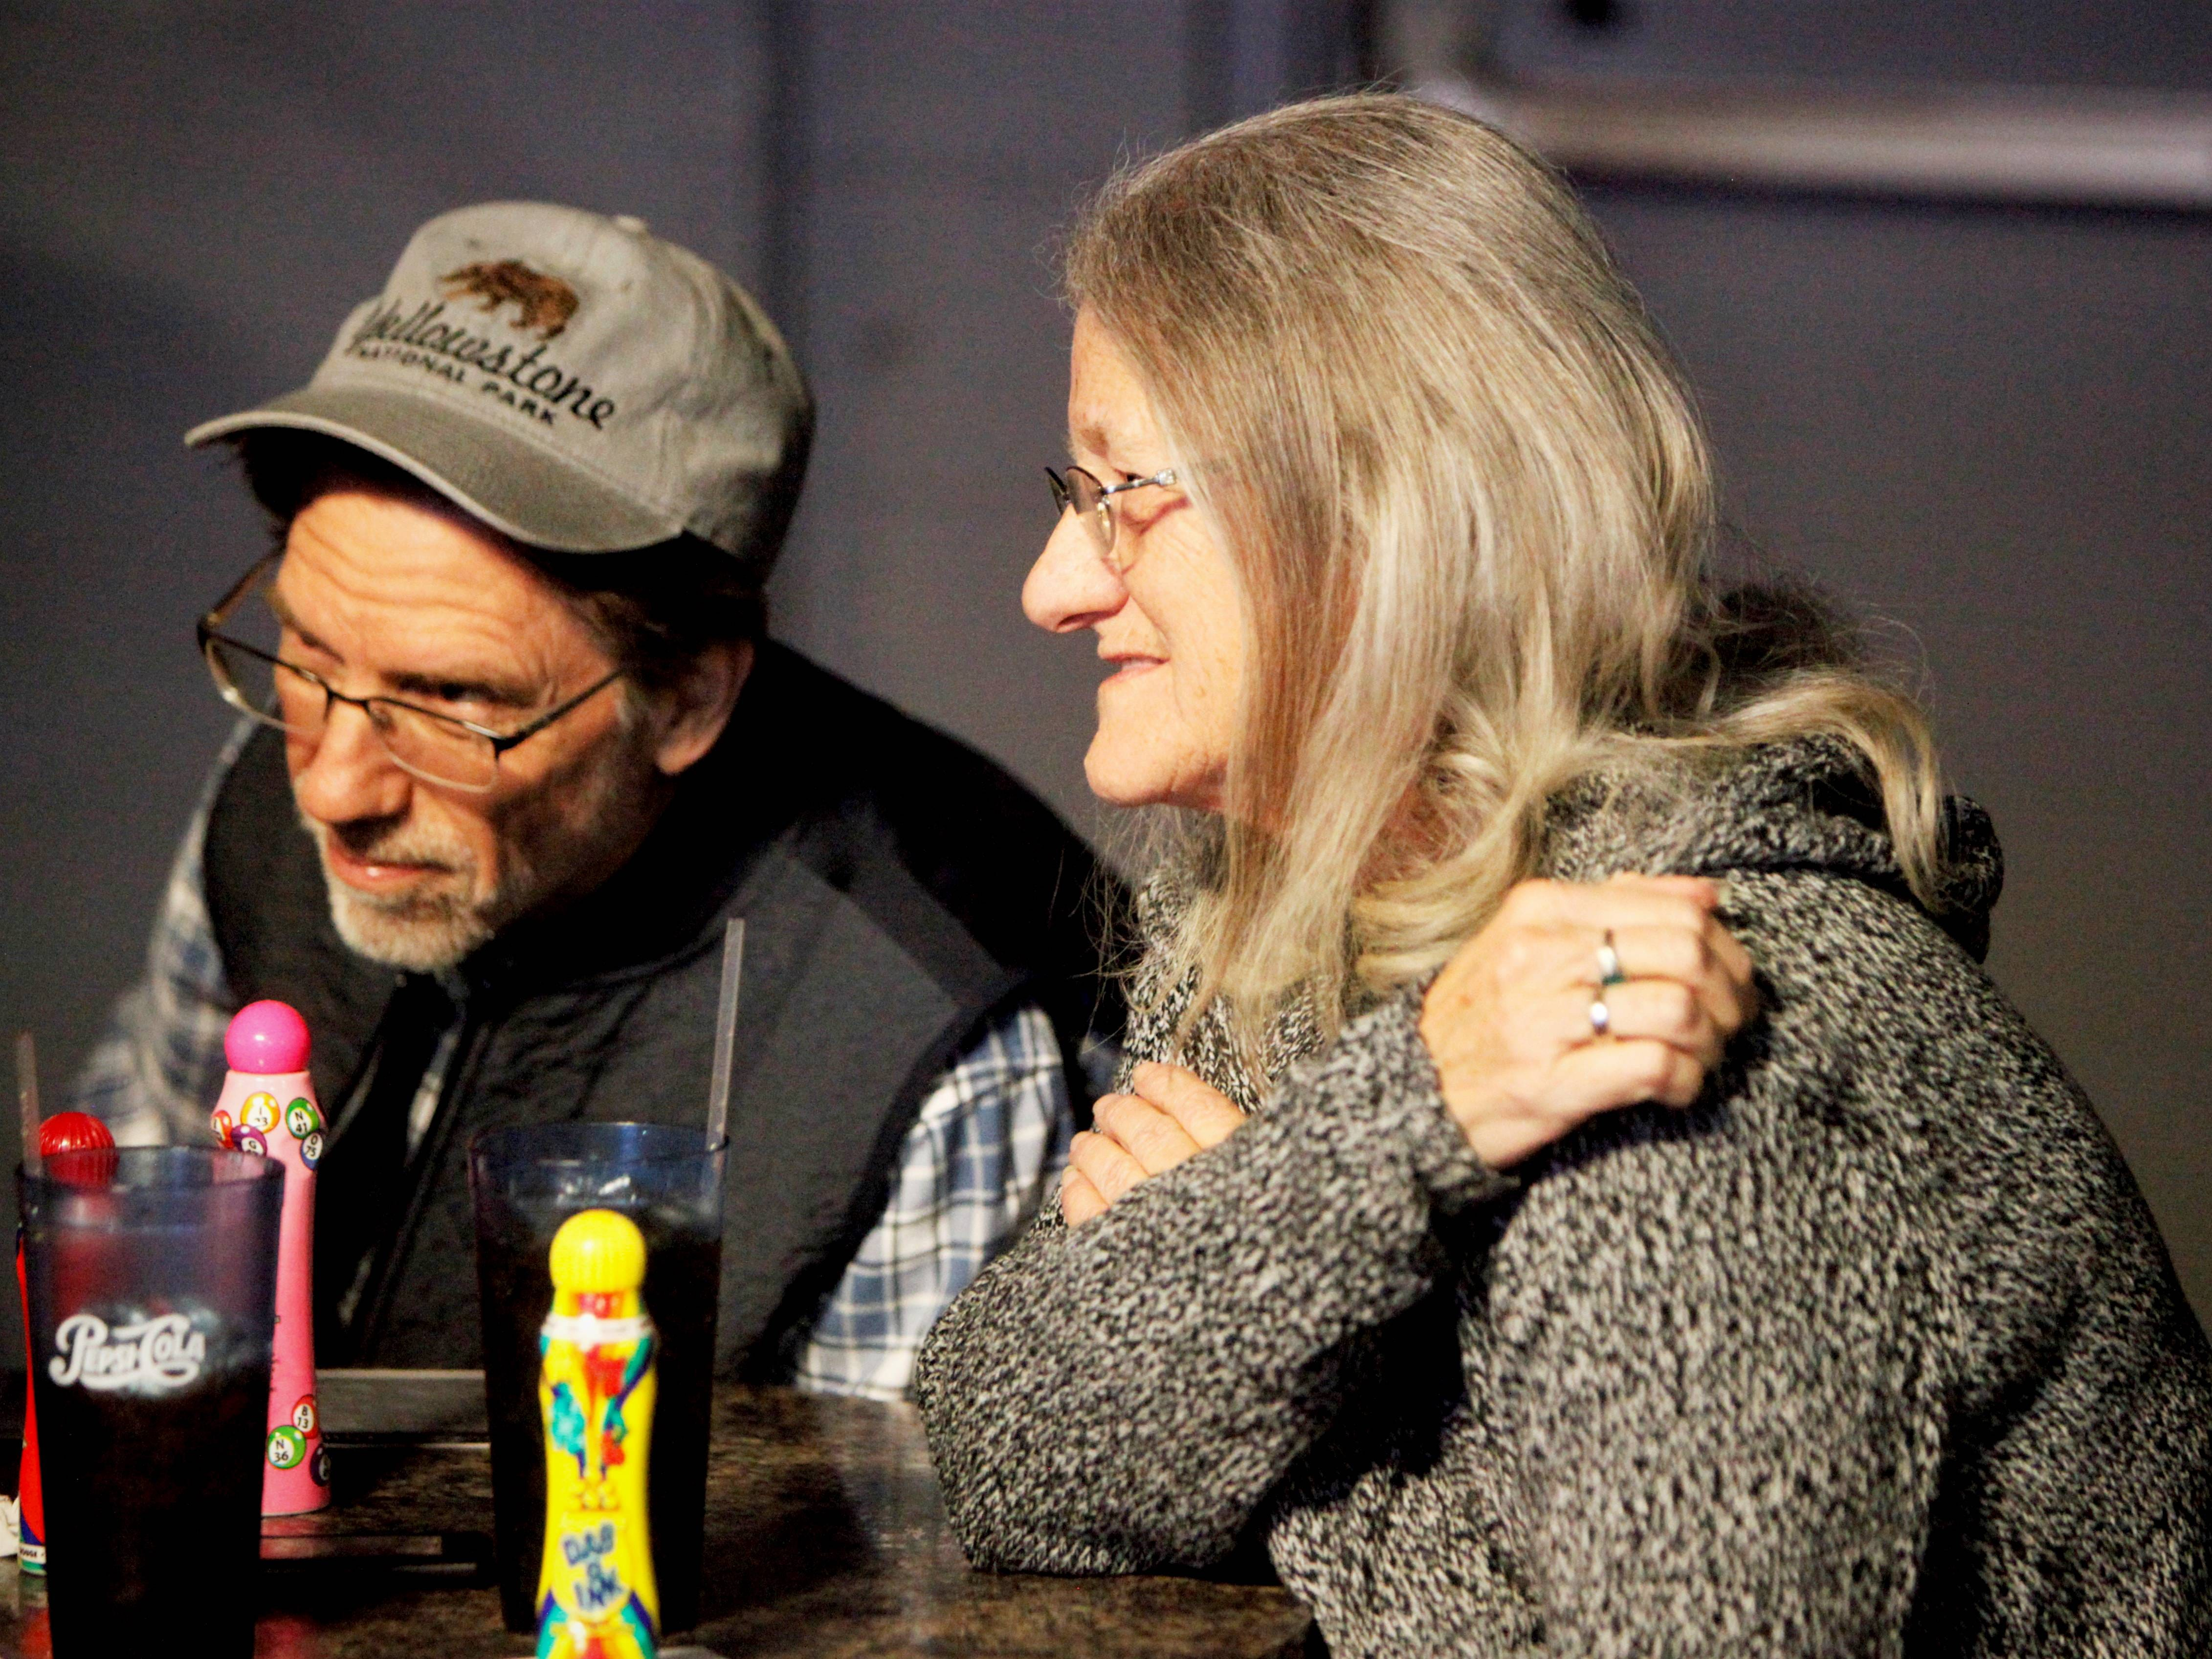 Mark Struckhoff, executive director of Council of Churches of the Ozarks, and Verla Fleetwood attend Drag Queen Charity Bingo at Fuzion in Springfield.